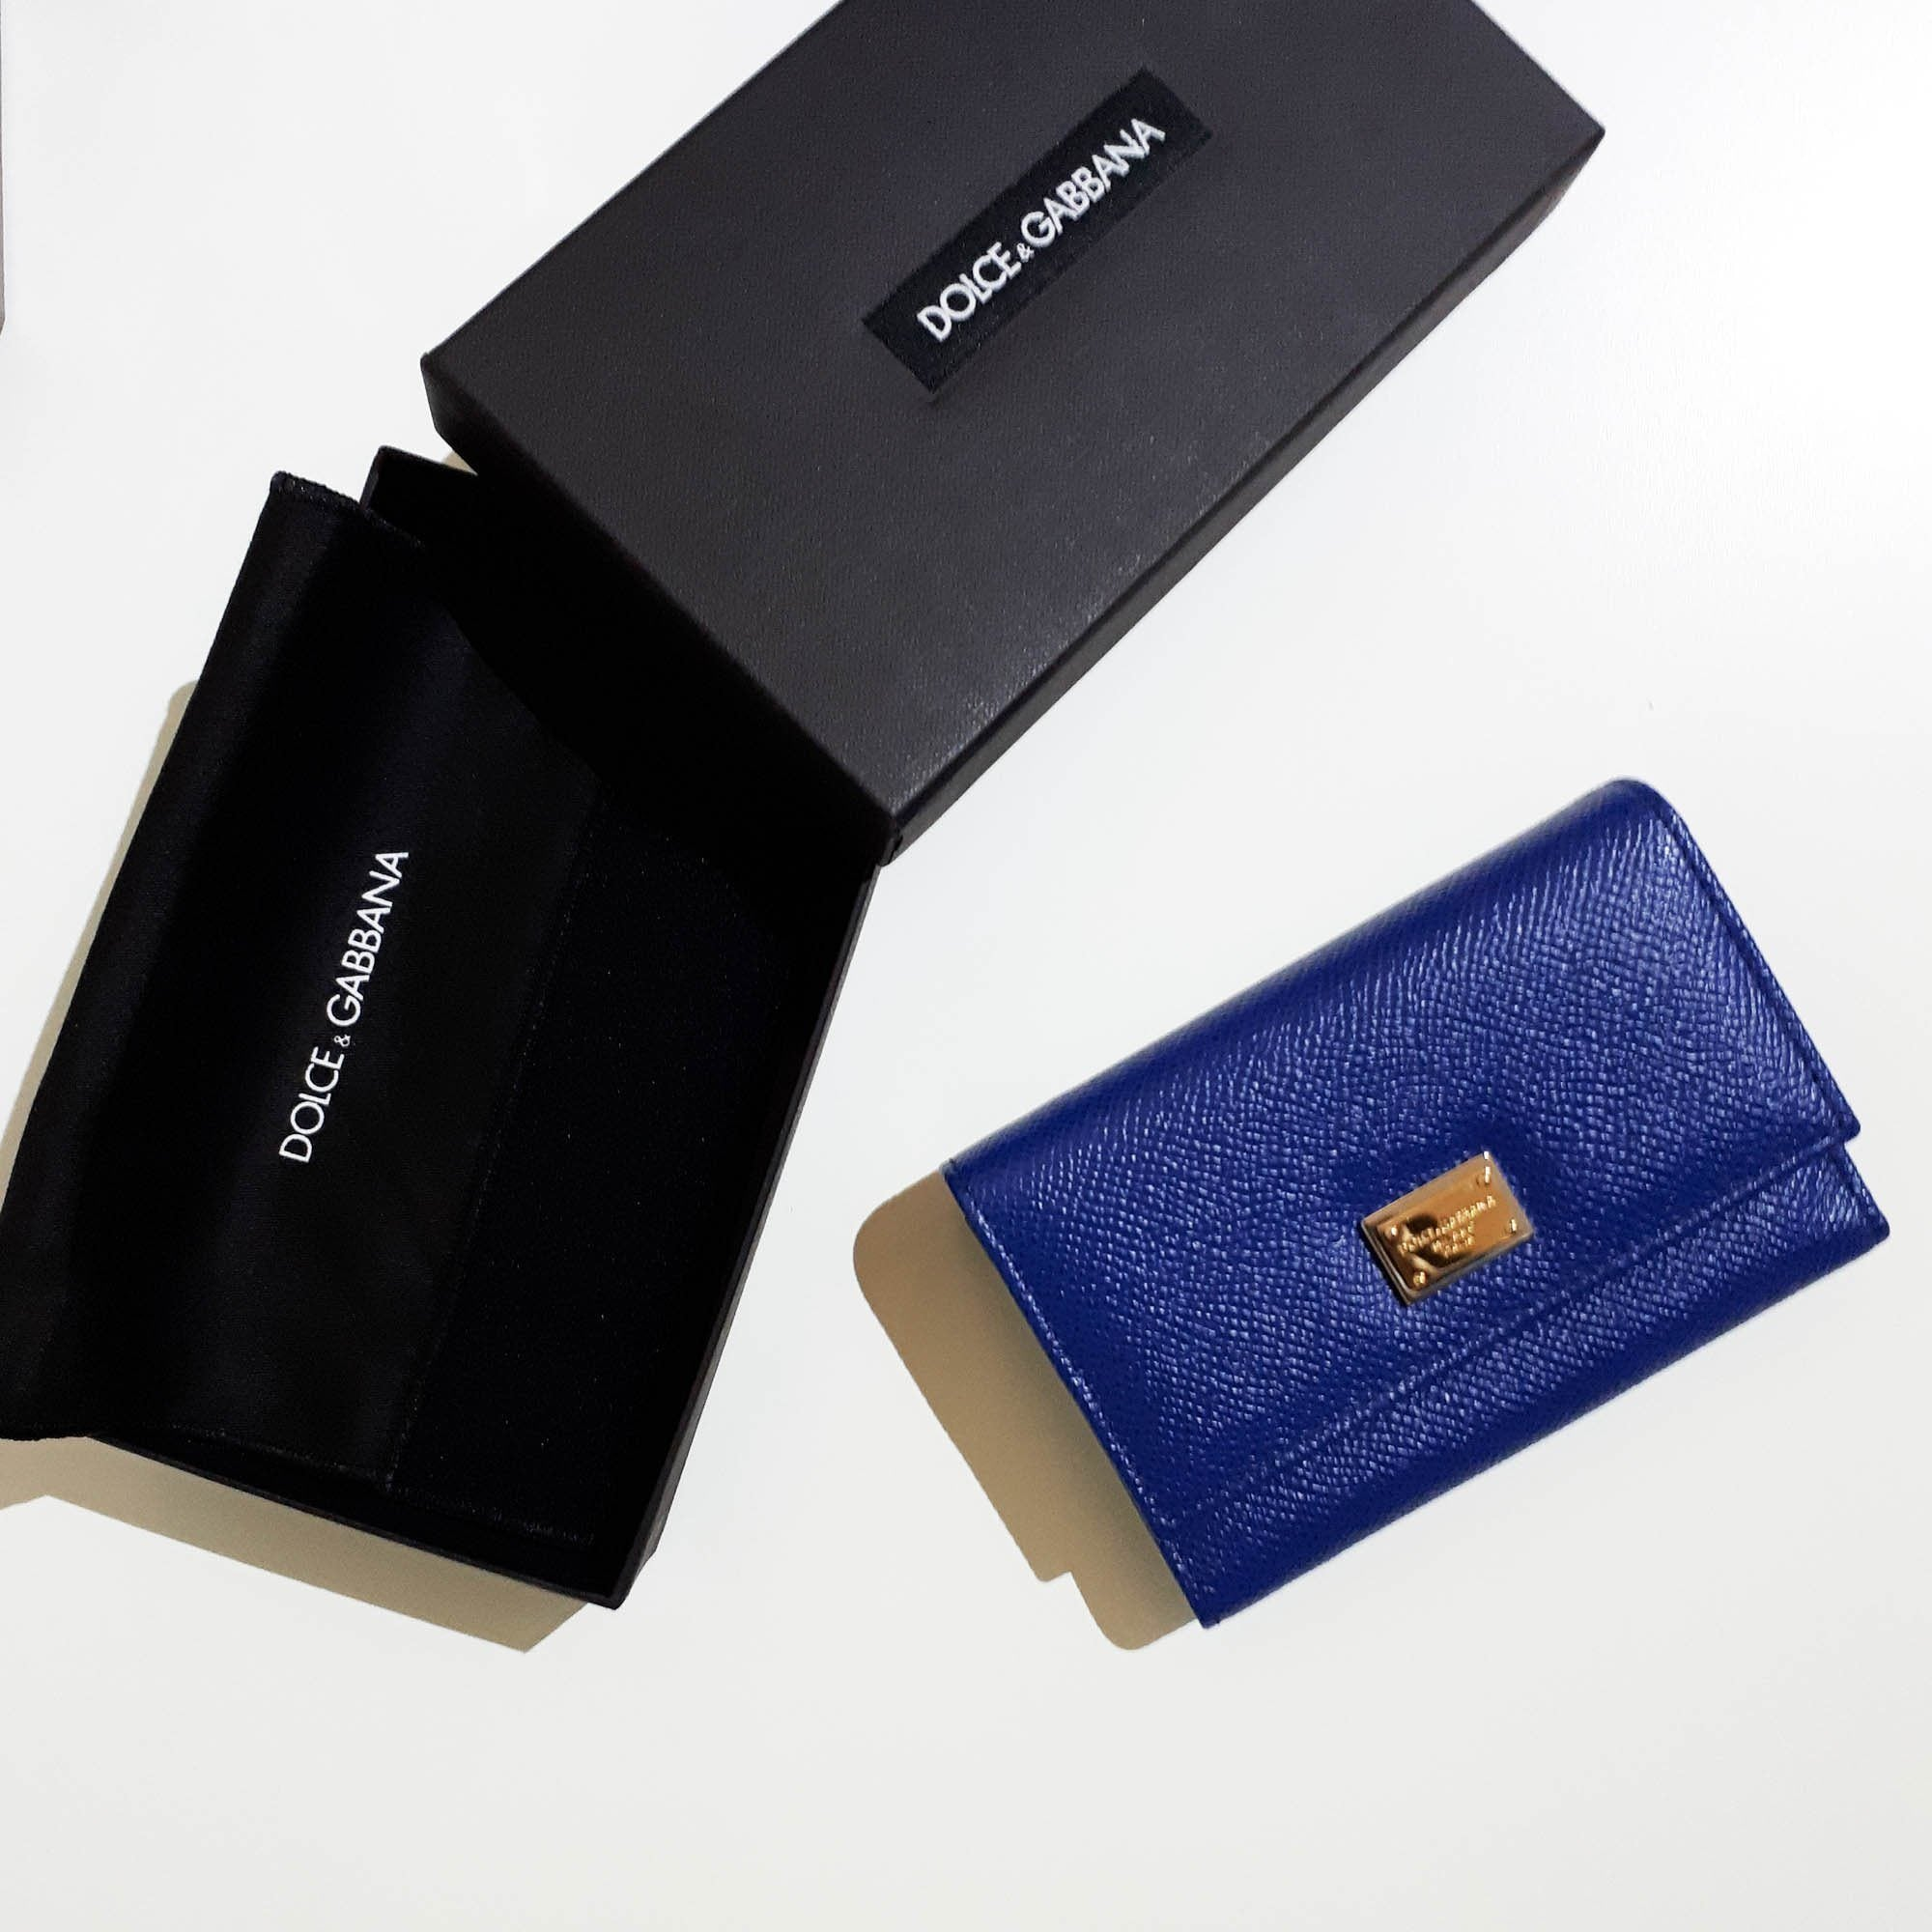 Dolce and Gabbana Blue Wallet